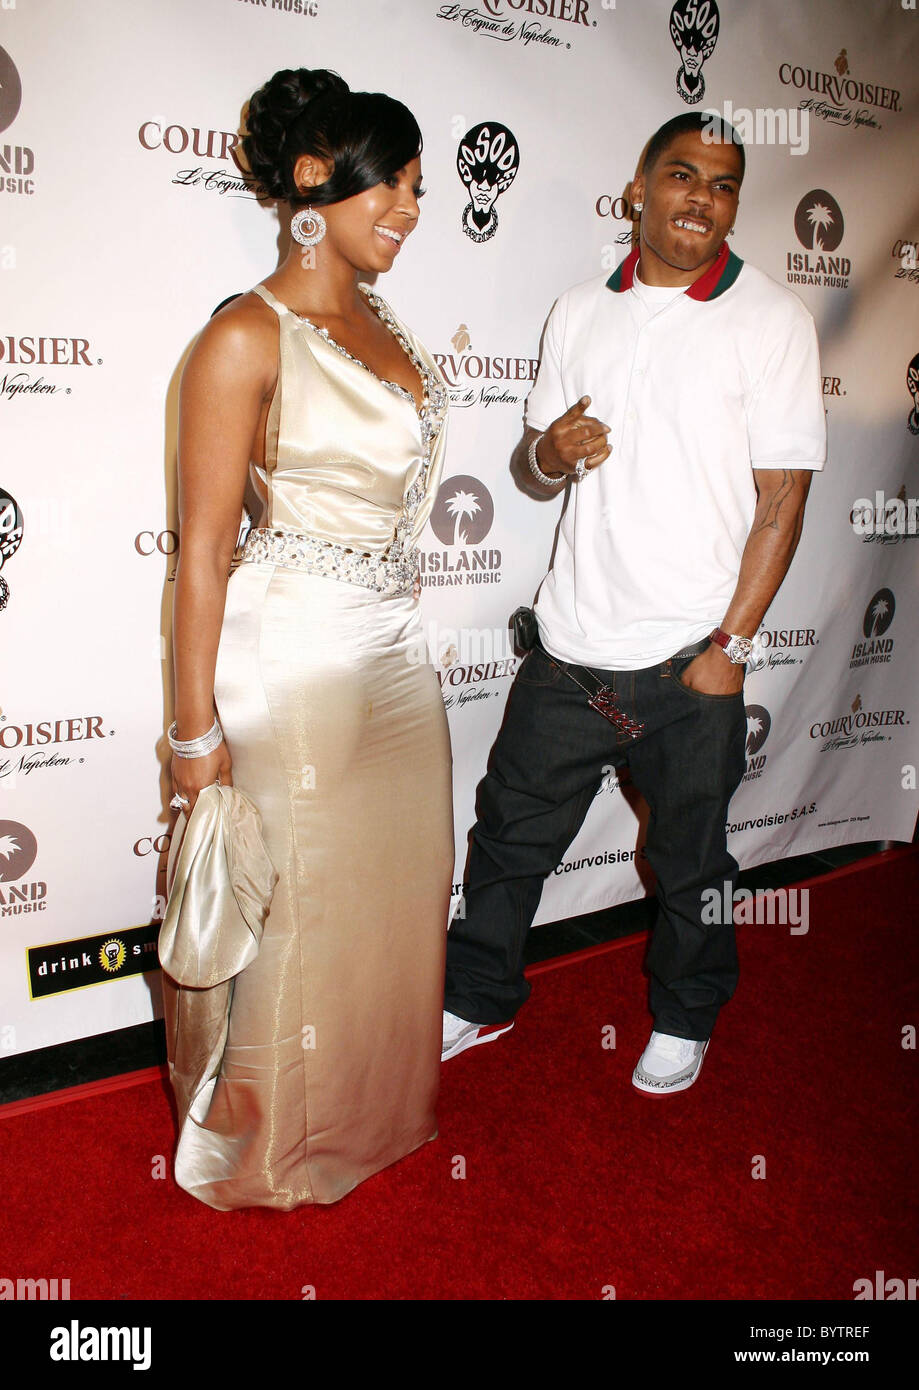 Ashanti and Nelly House of Courvoisier after party held at ...